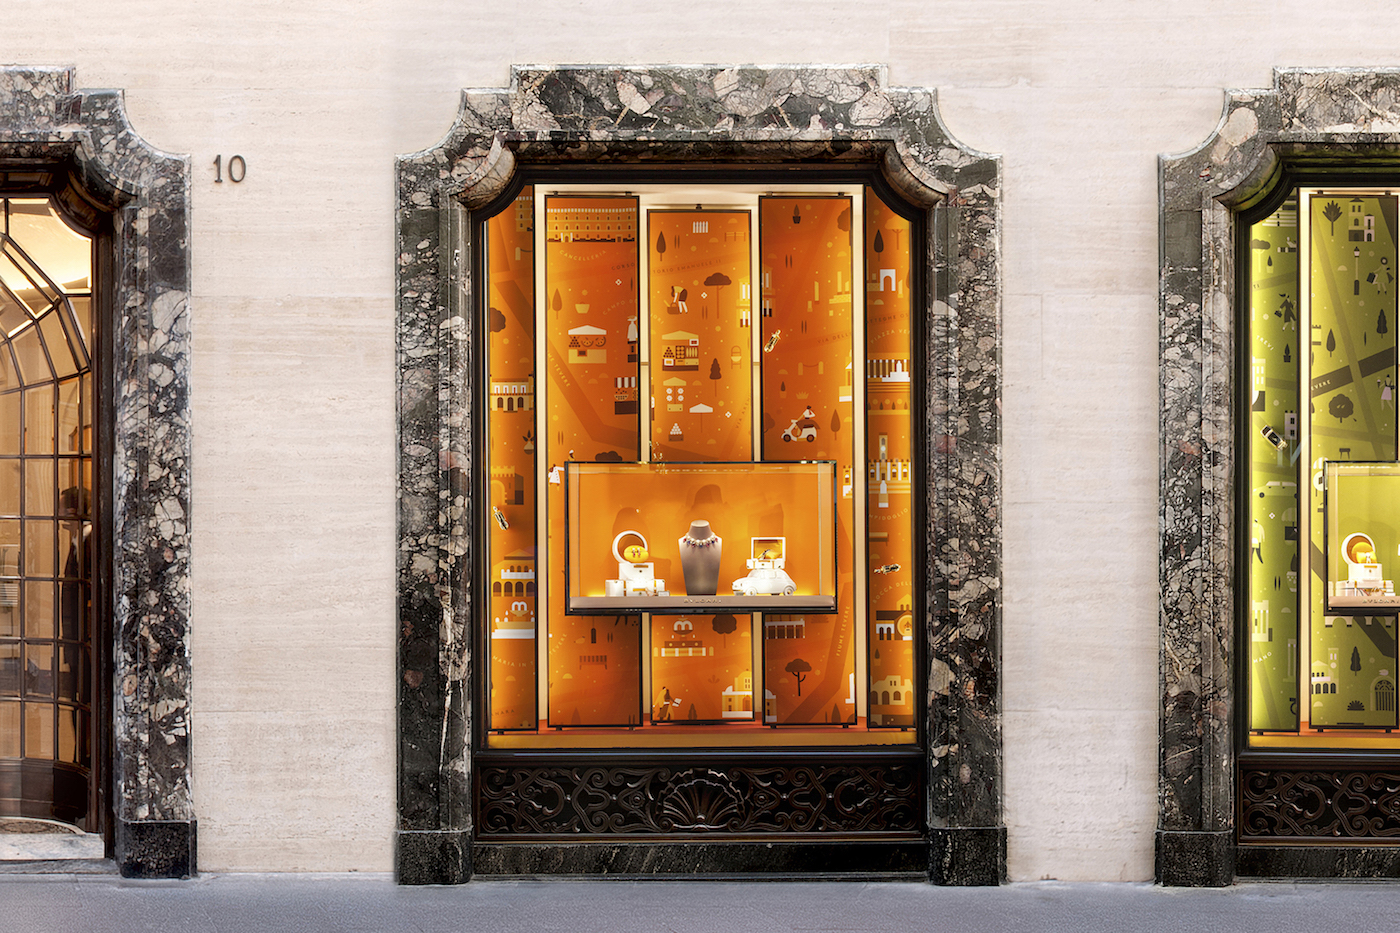 One of Lotta Nieminen's recent illustration projects was creating new window displays for the Italian jewelry brand Bvlgari.